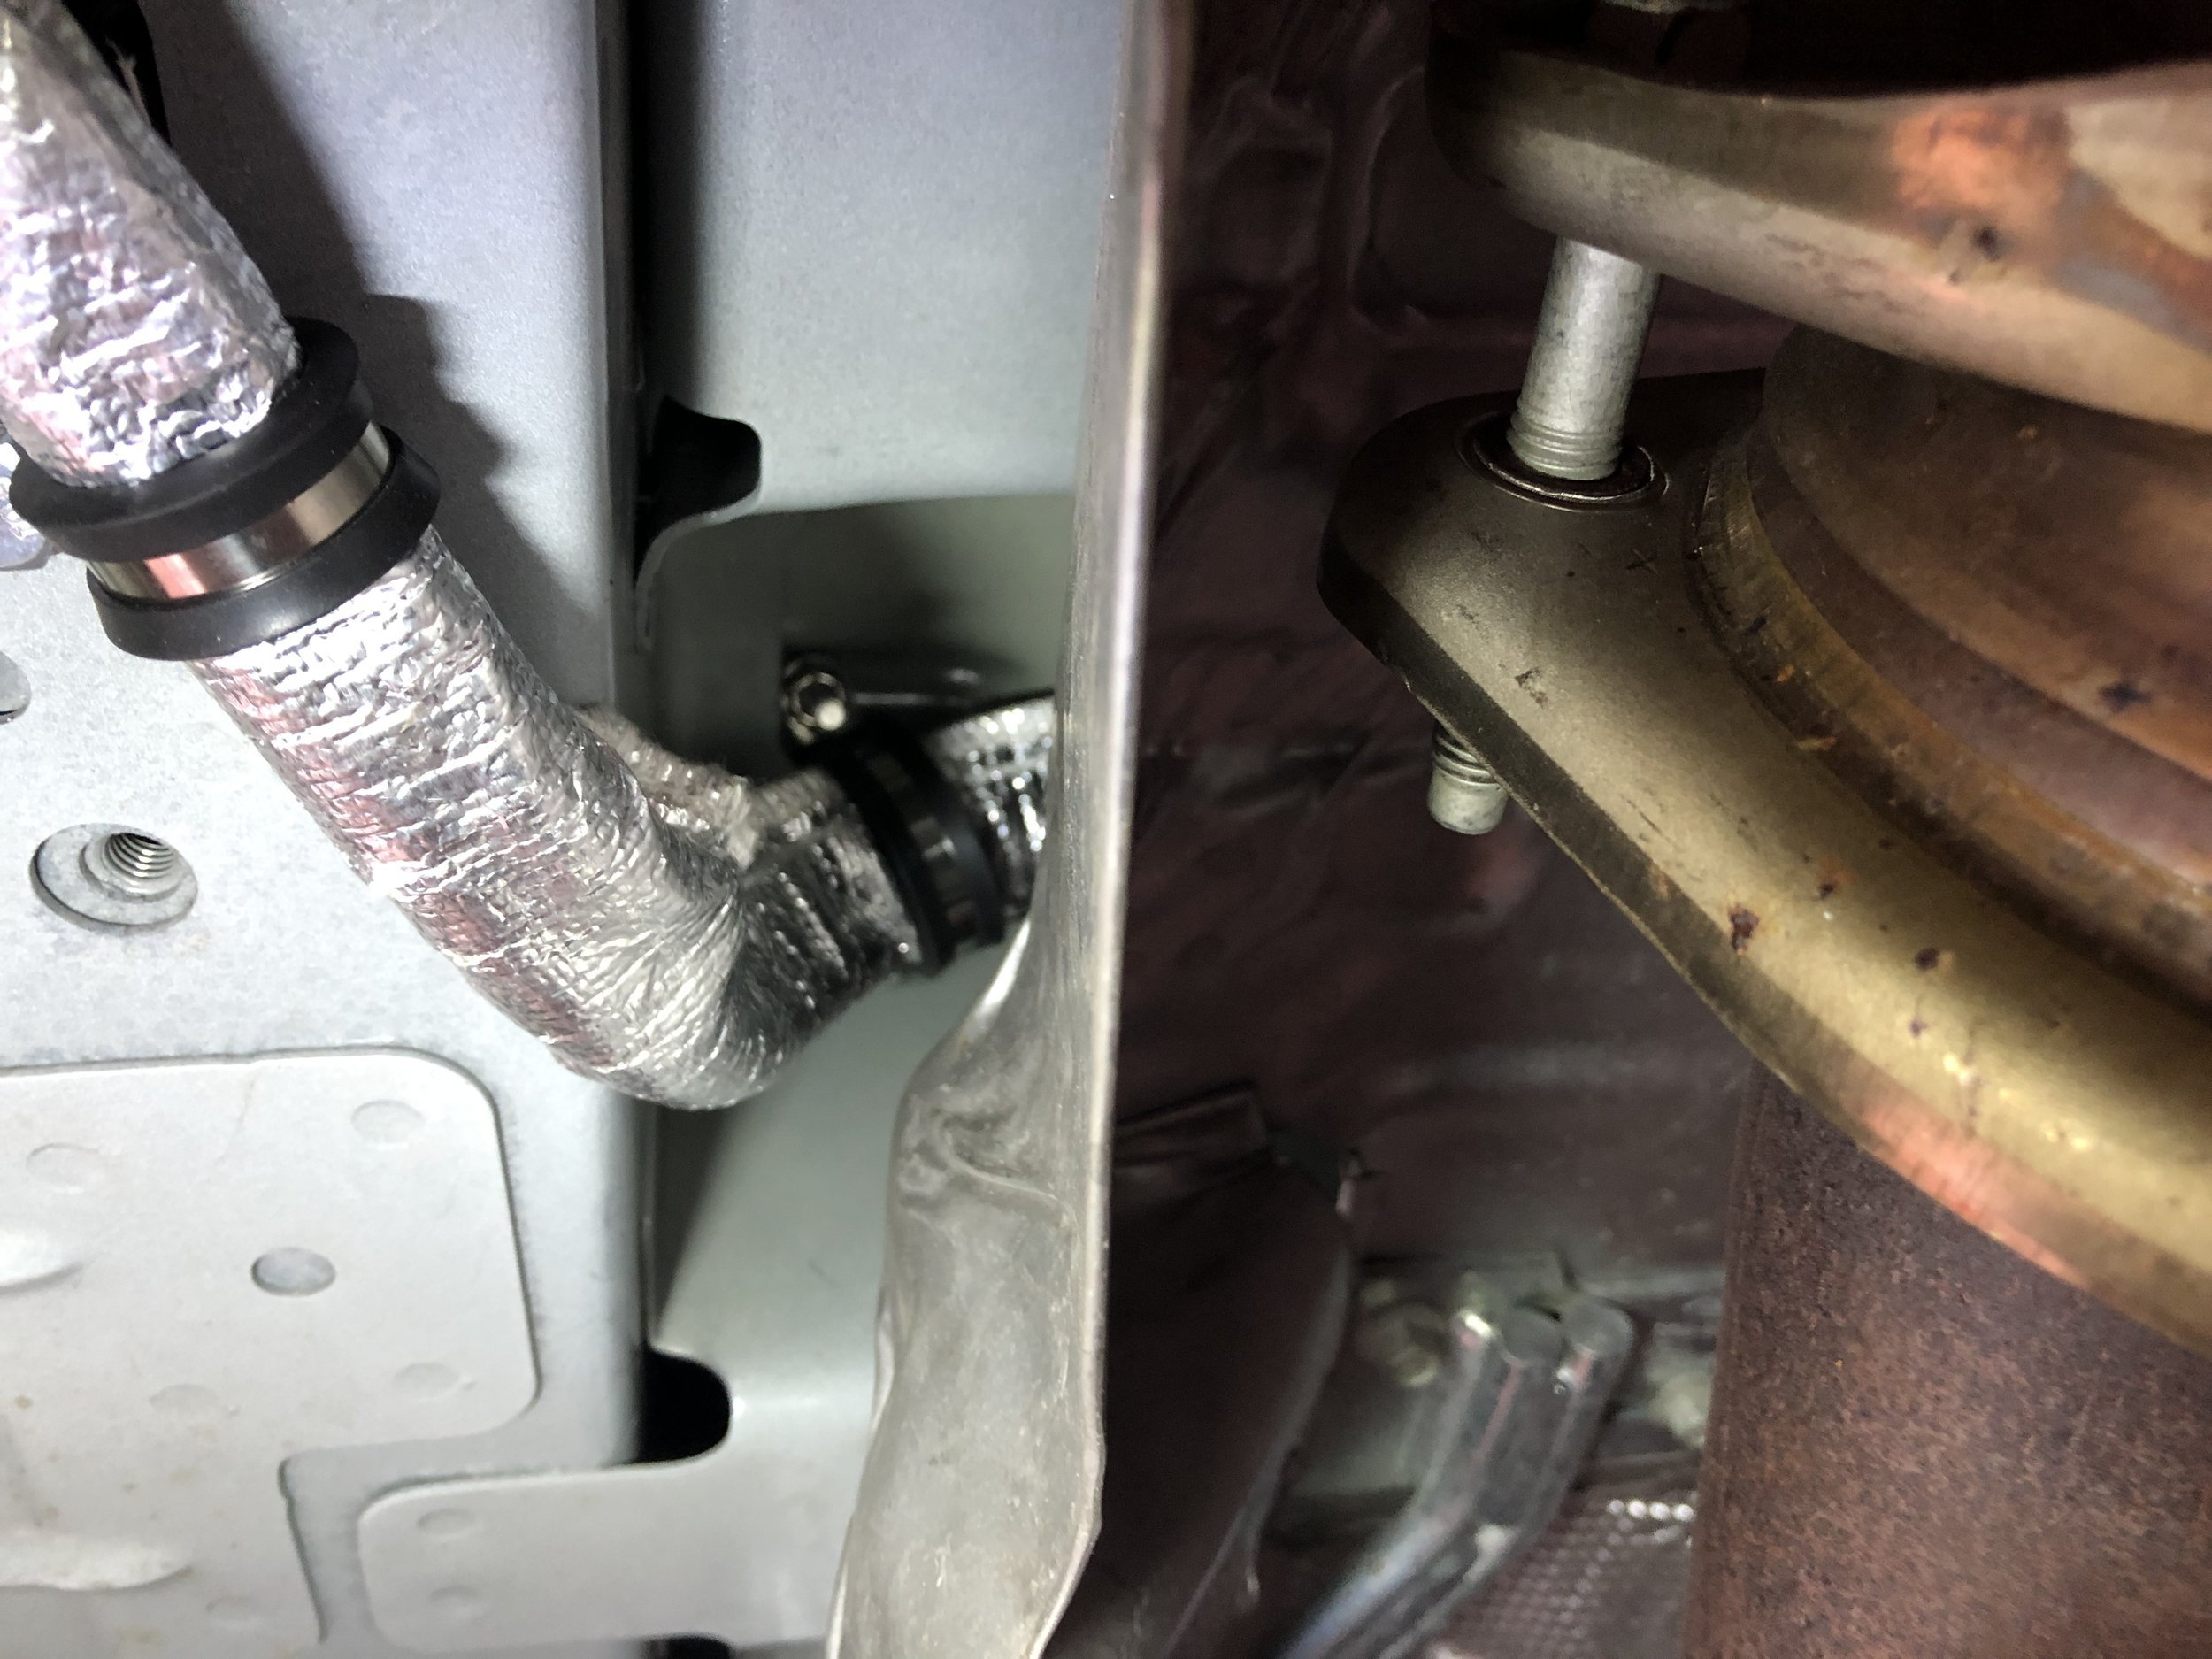 Clamp holding line off of exhaust